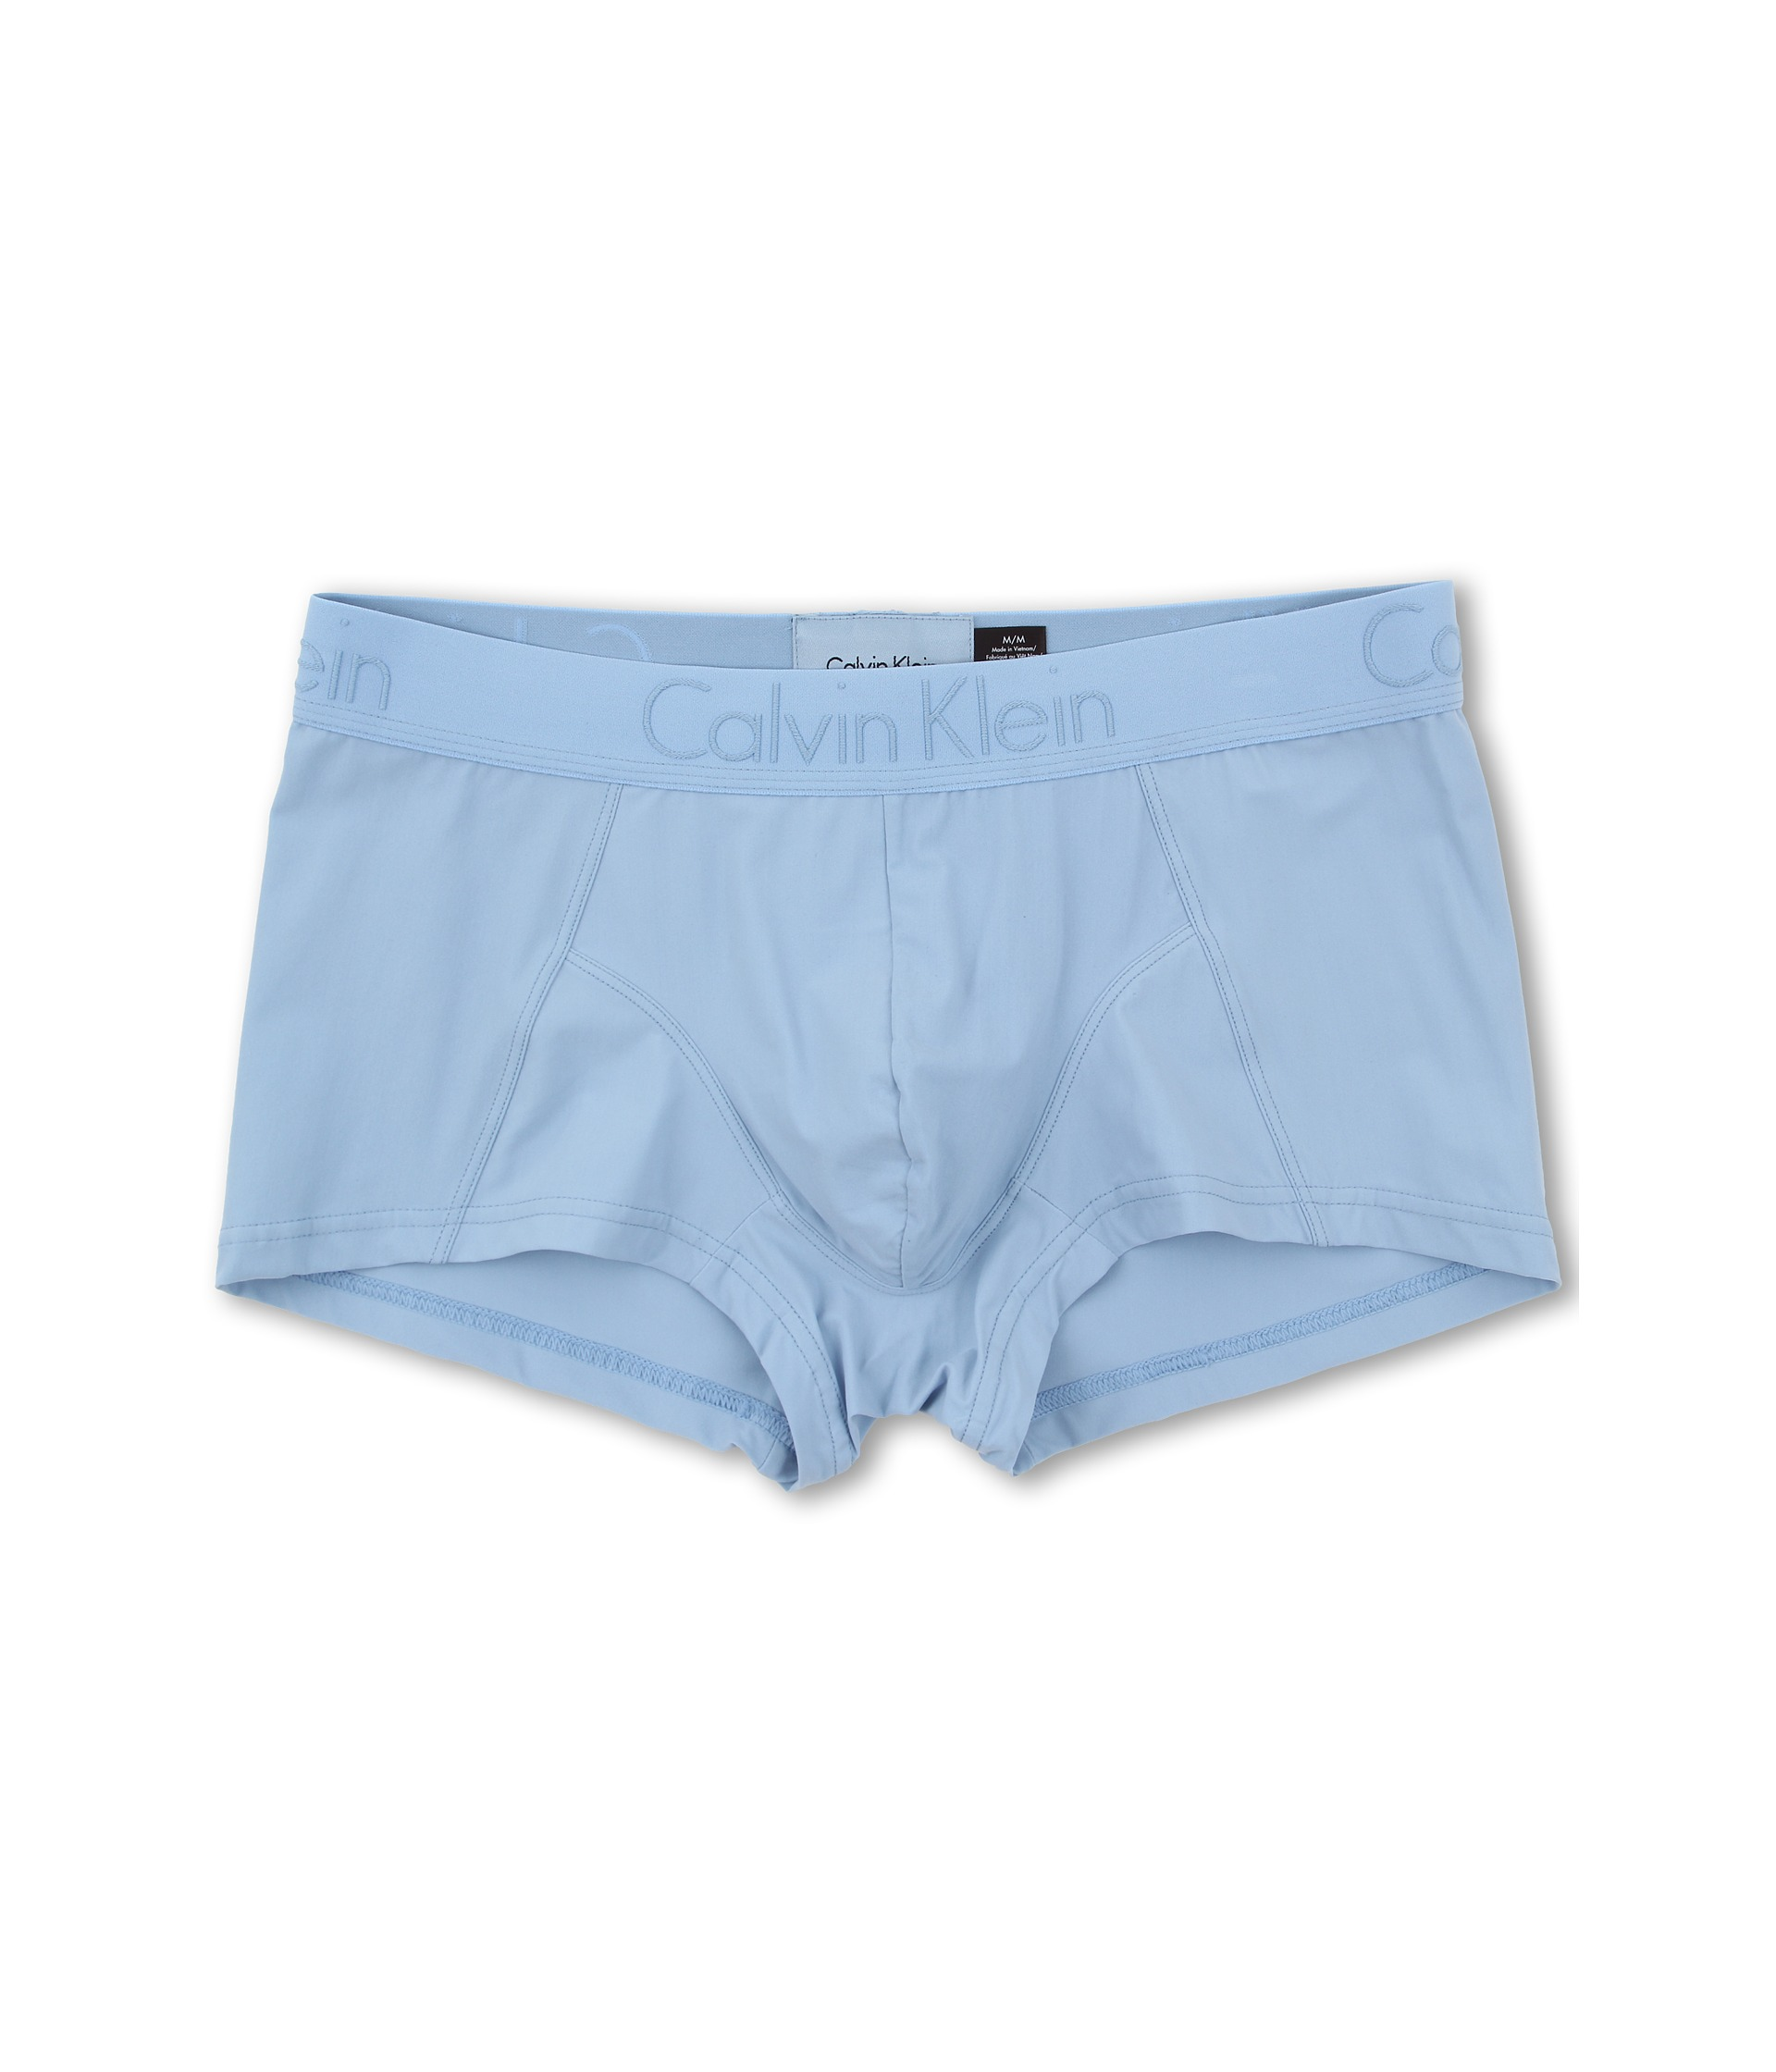 calvin klein underwear low rise trunk u1751 shipped free. Black Bedroom Furniture Sets. Home Design Ideas